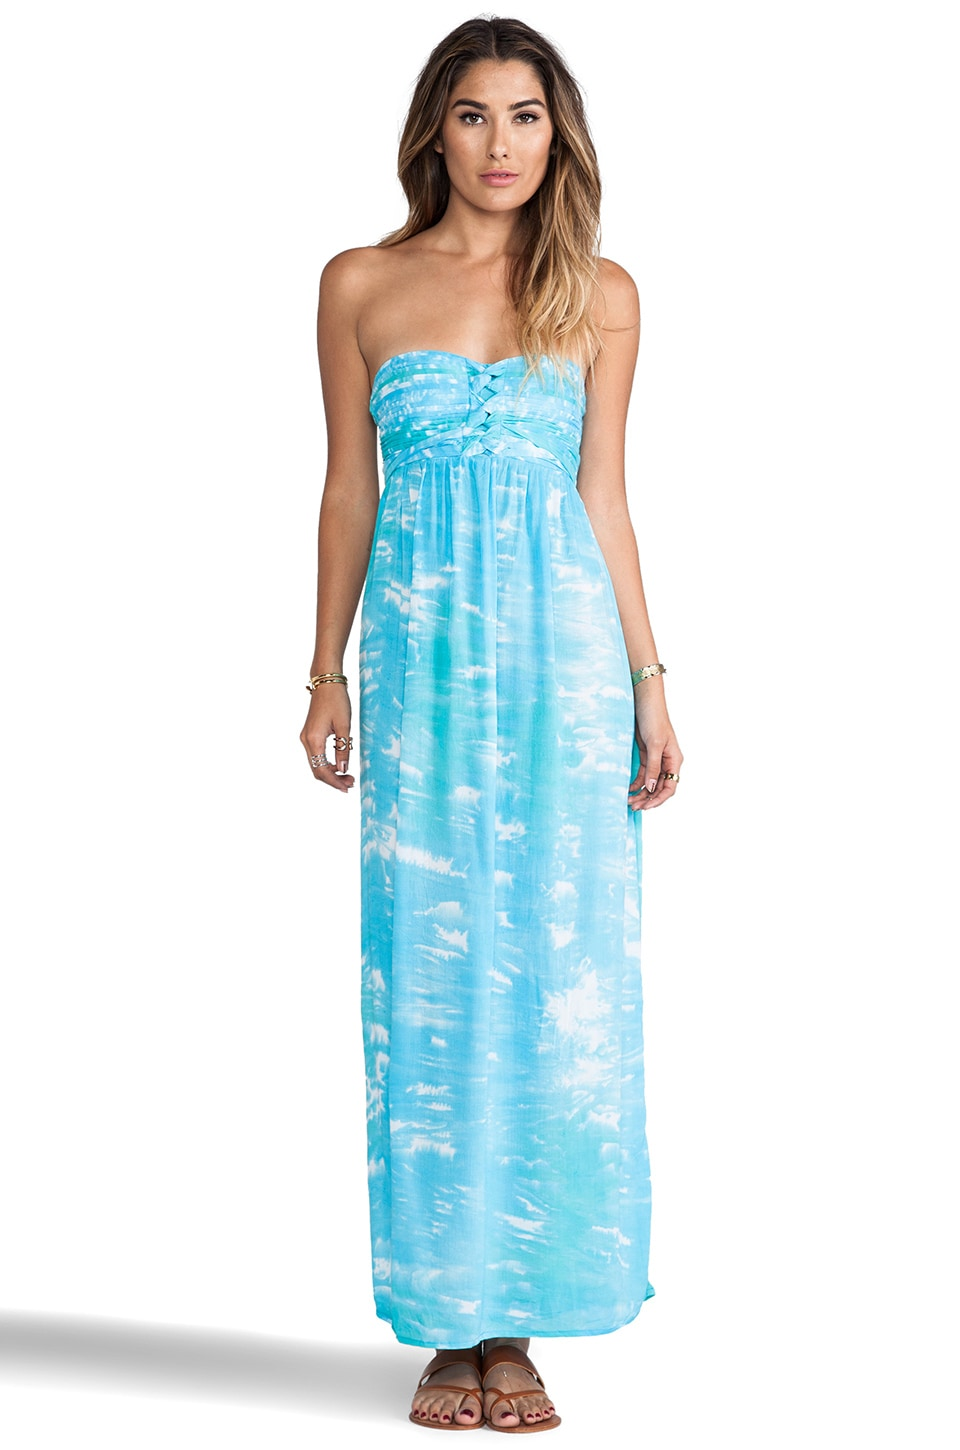 Tiare Hawaii Jasmine Maxi Dress in Underwater Print